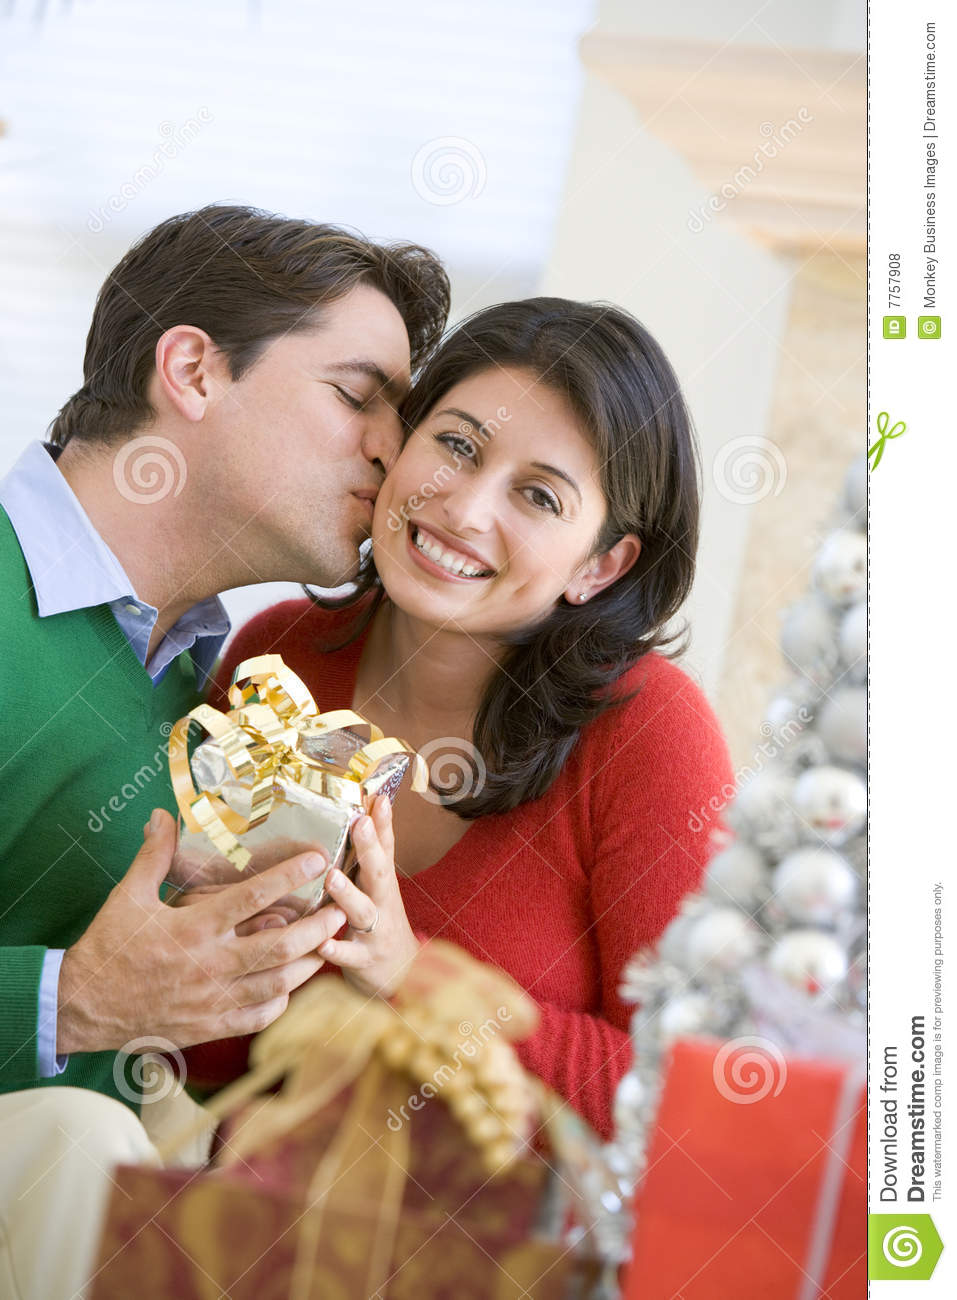 Husband Surprising Wife With Christmas Present Stock Photo